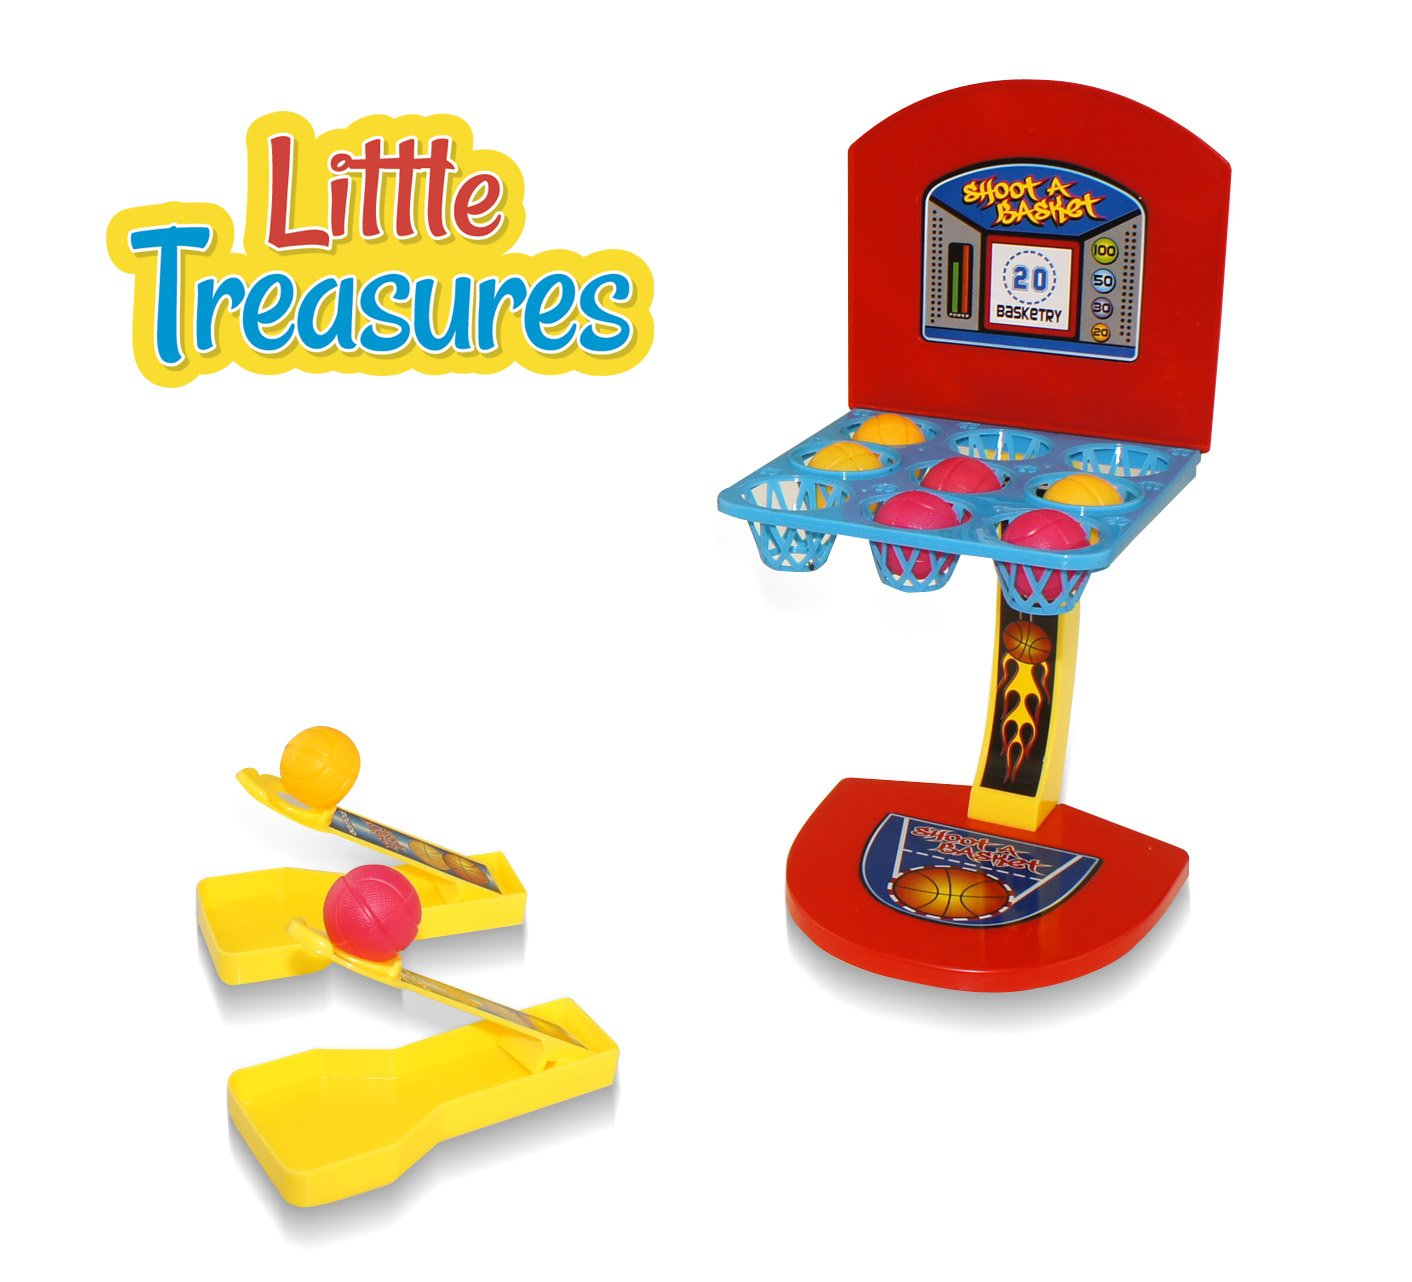 Little Treasures Ball Shoot Basketball Game, Mini Version for The Home or Office Loved by Adults and Kids by Little Treasures